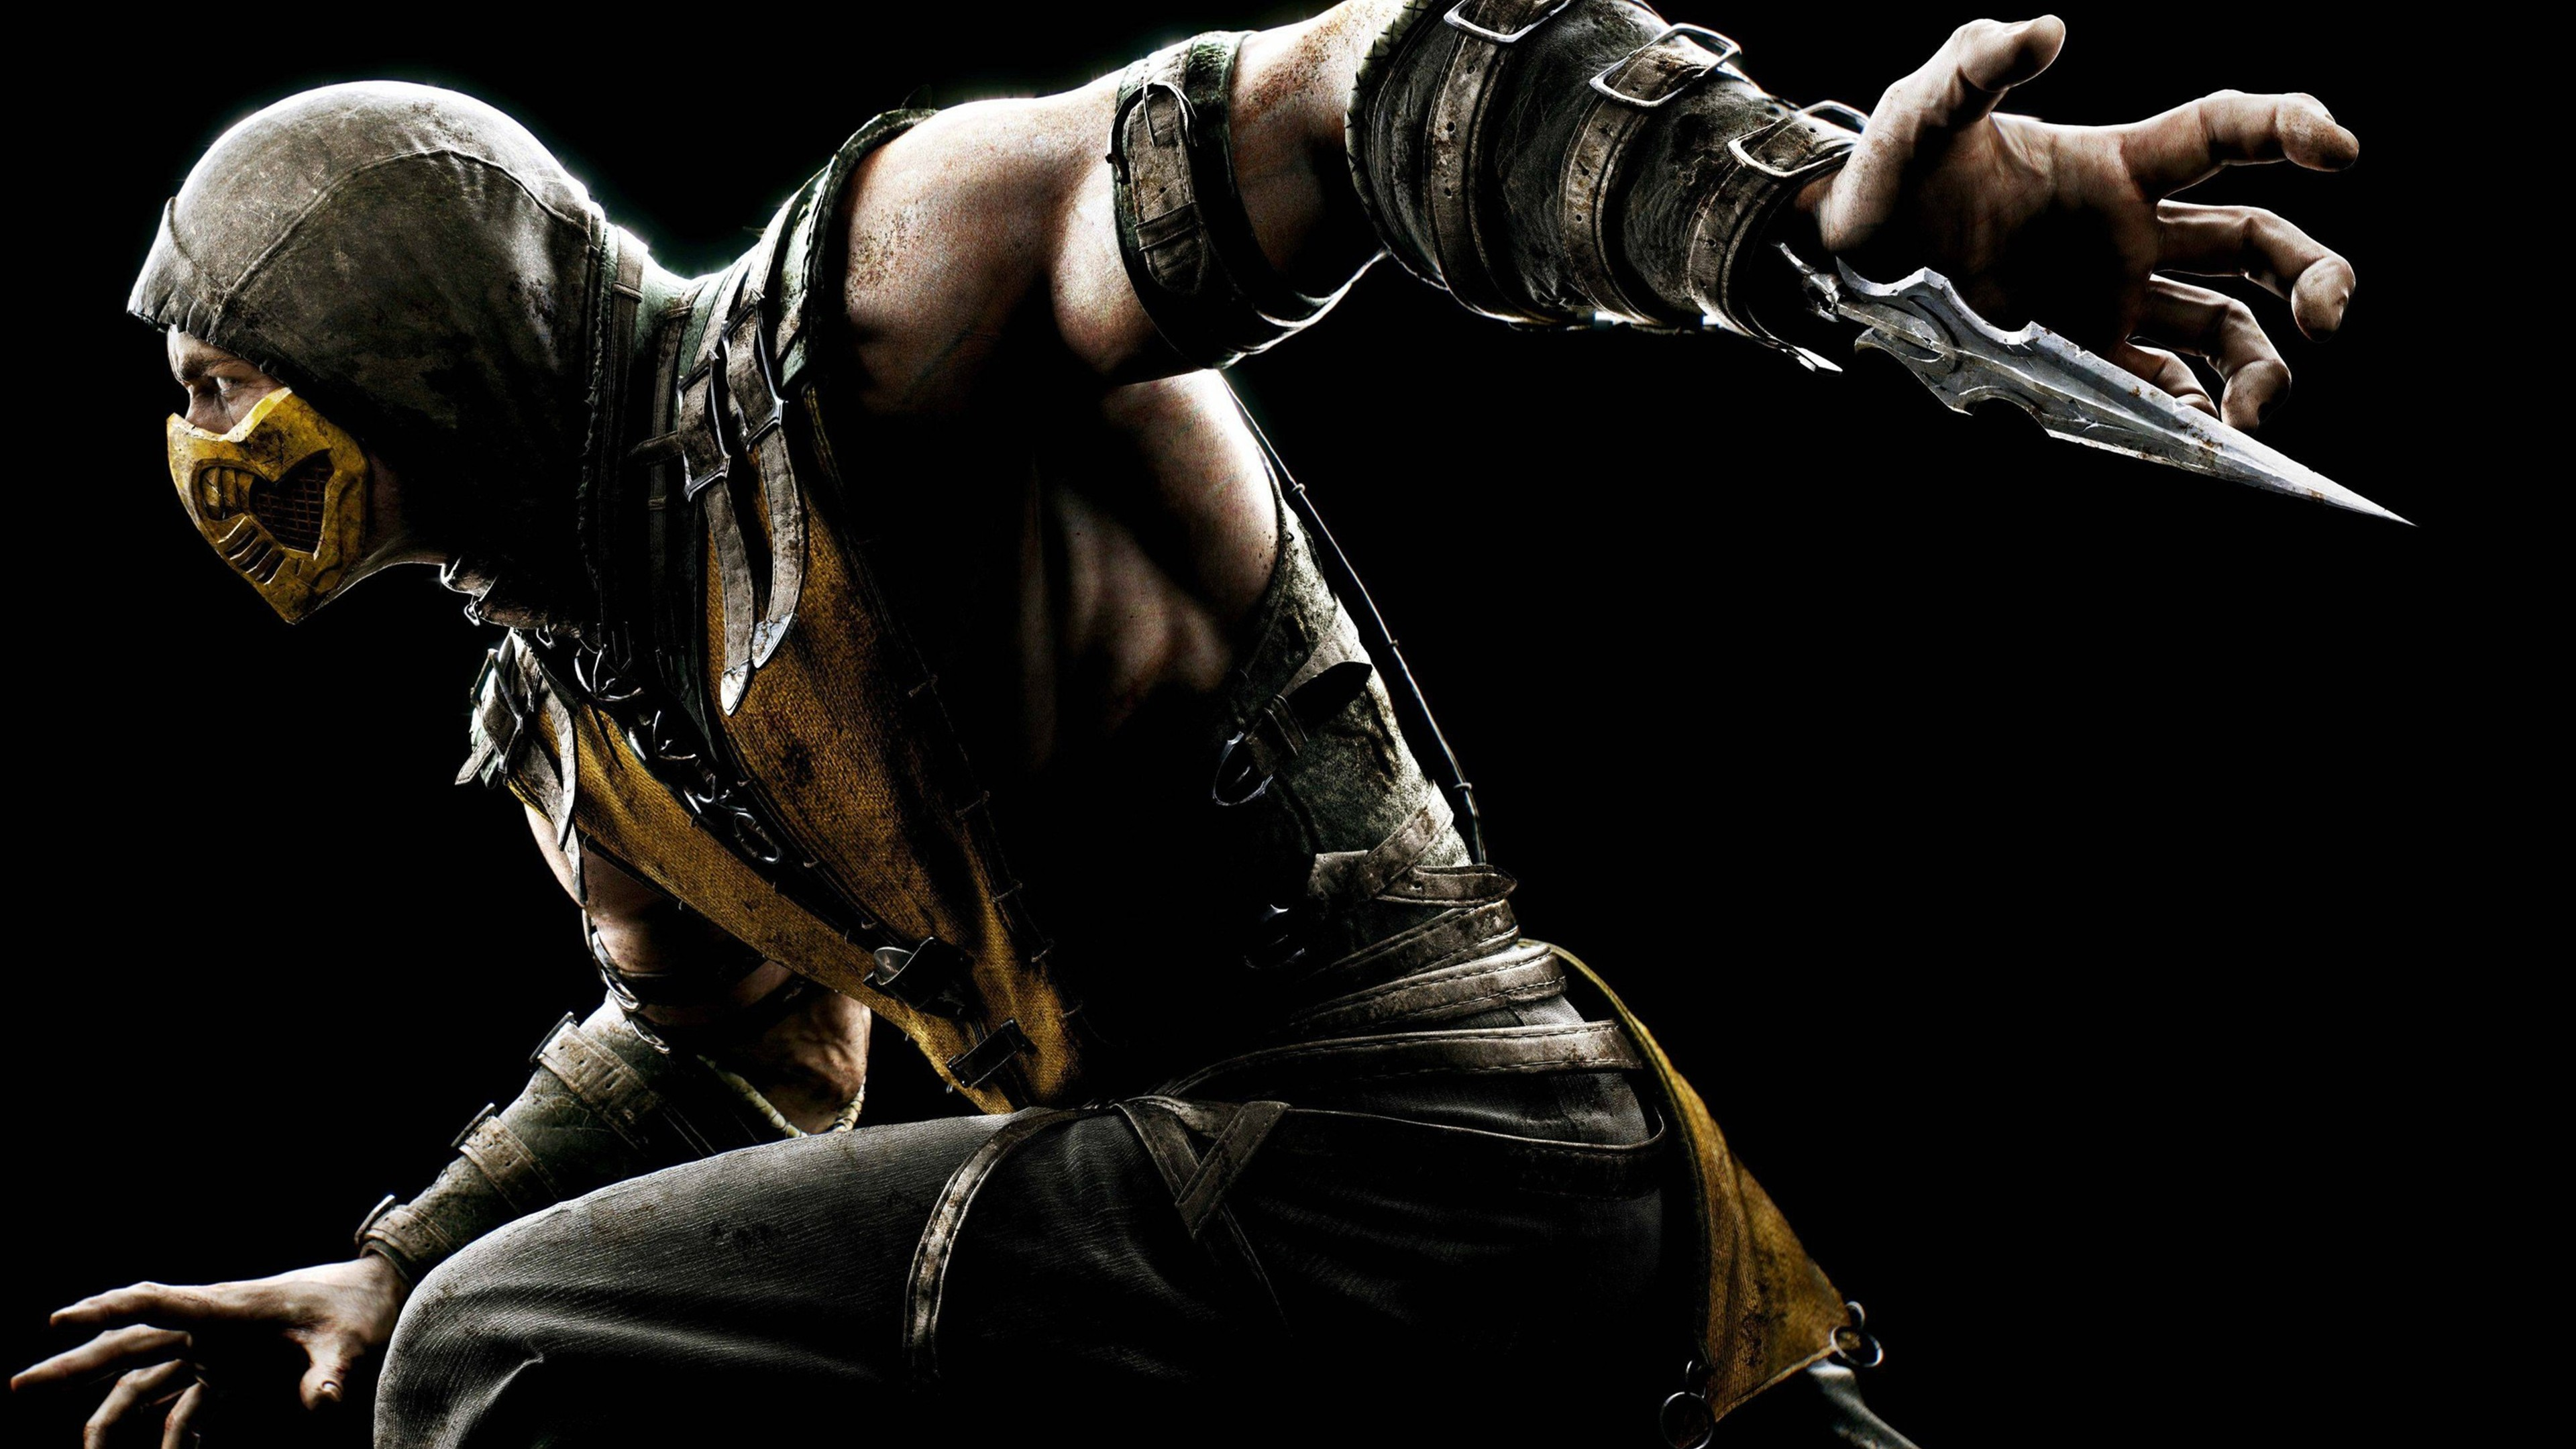 Mortal Kombat X Scorpion Hd Games 4k Wallpapers Images